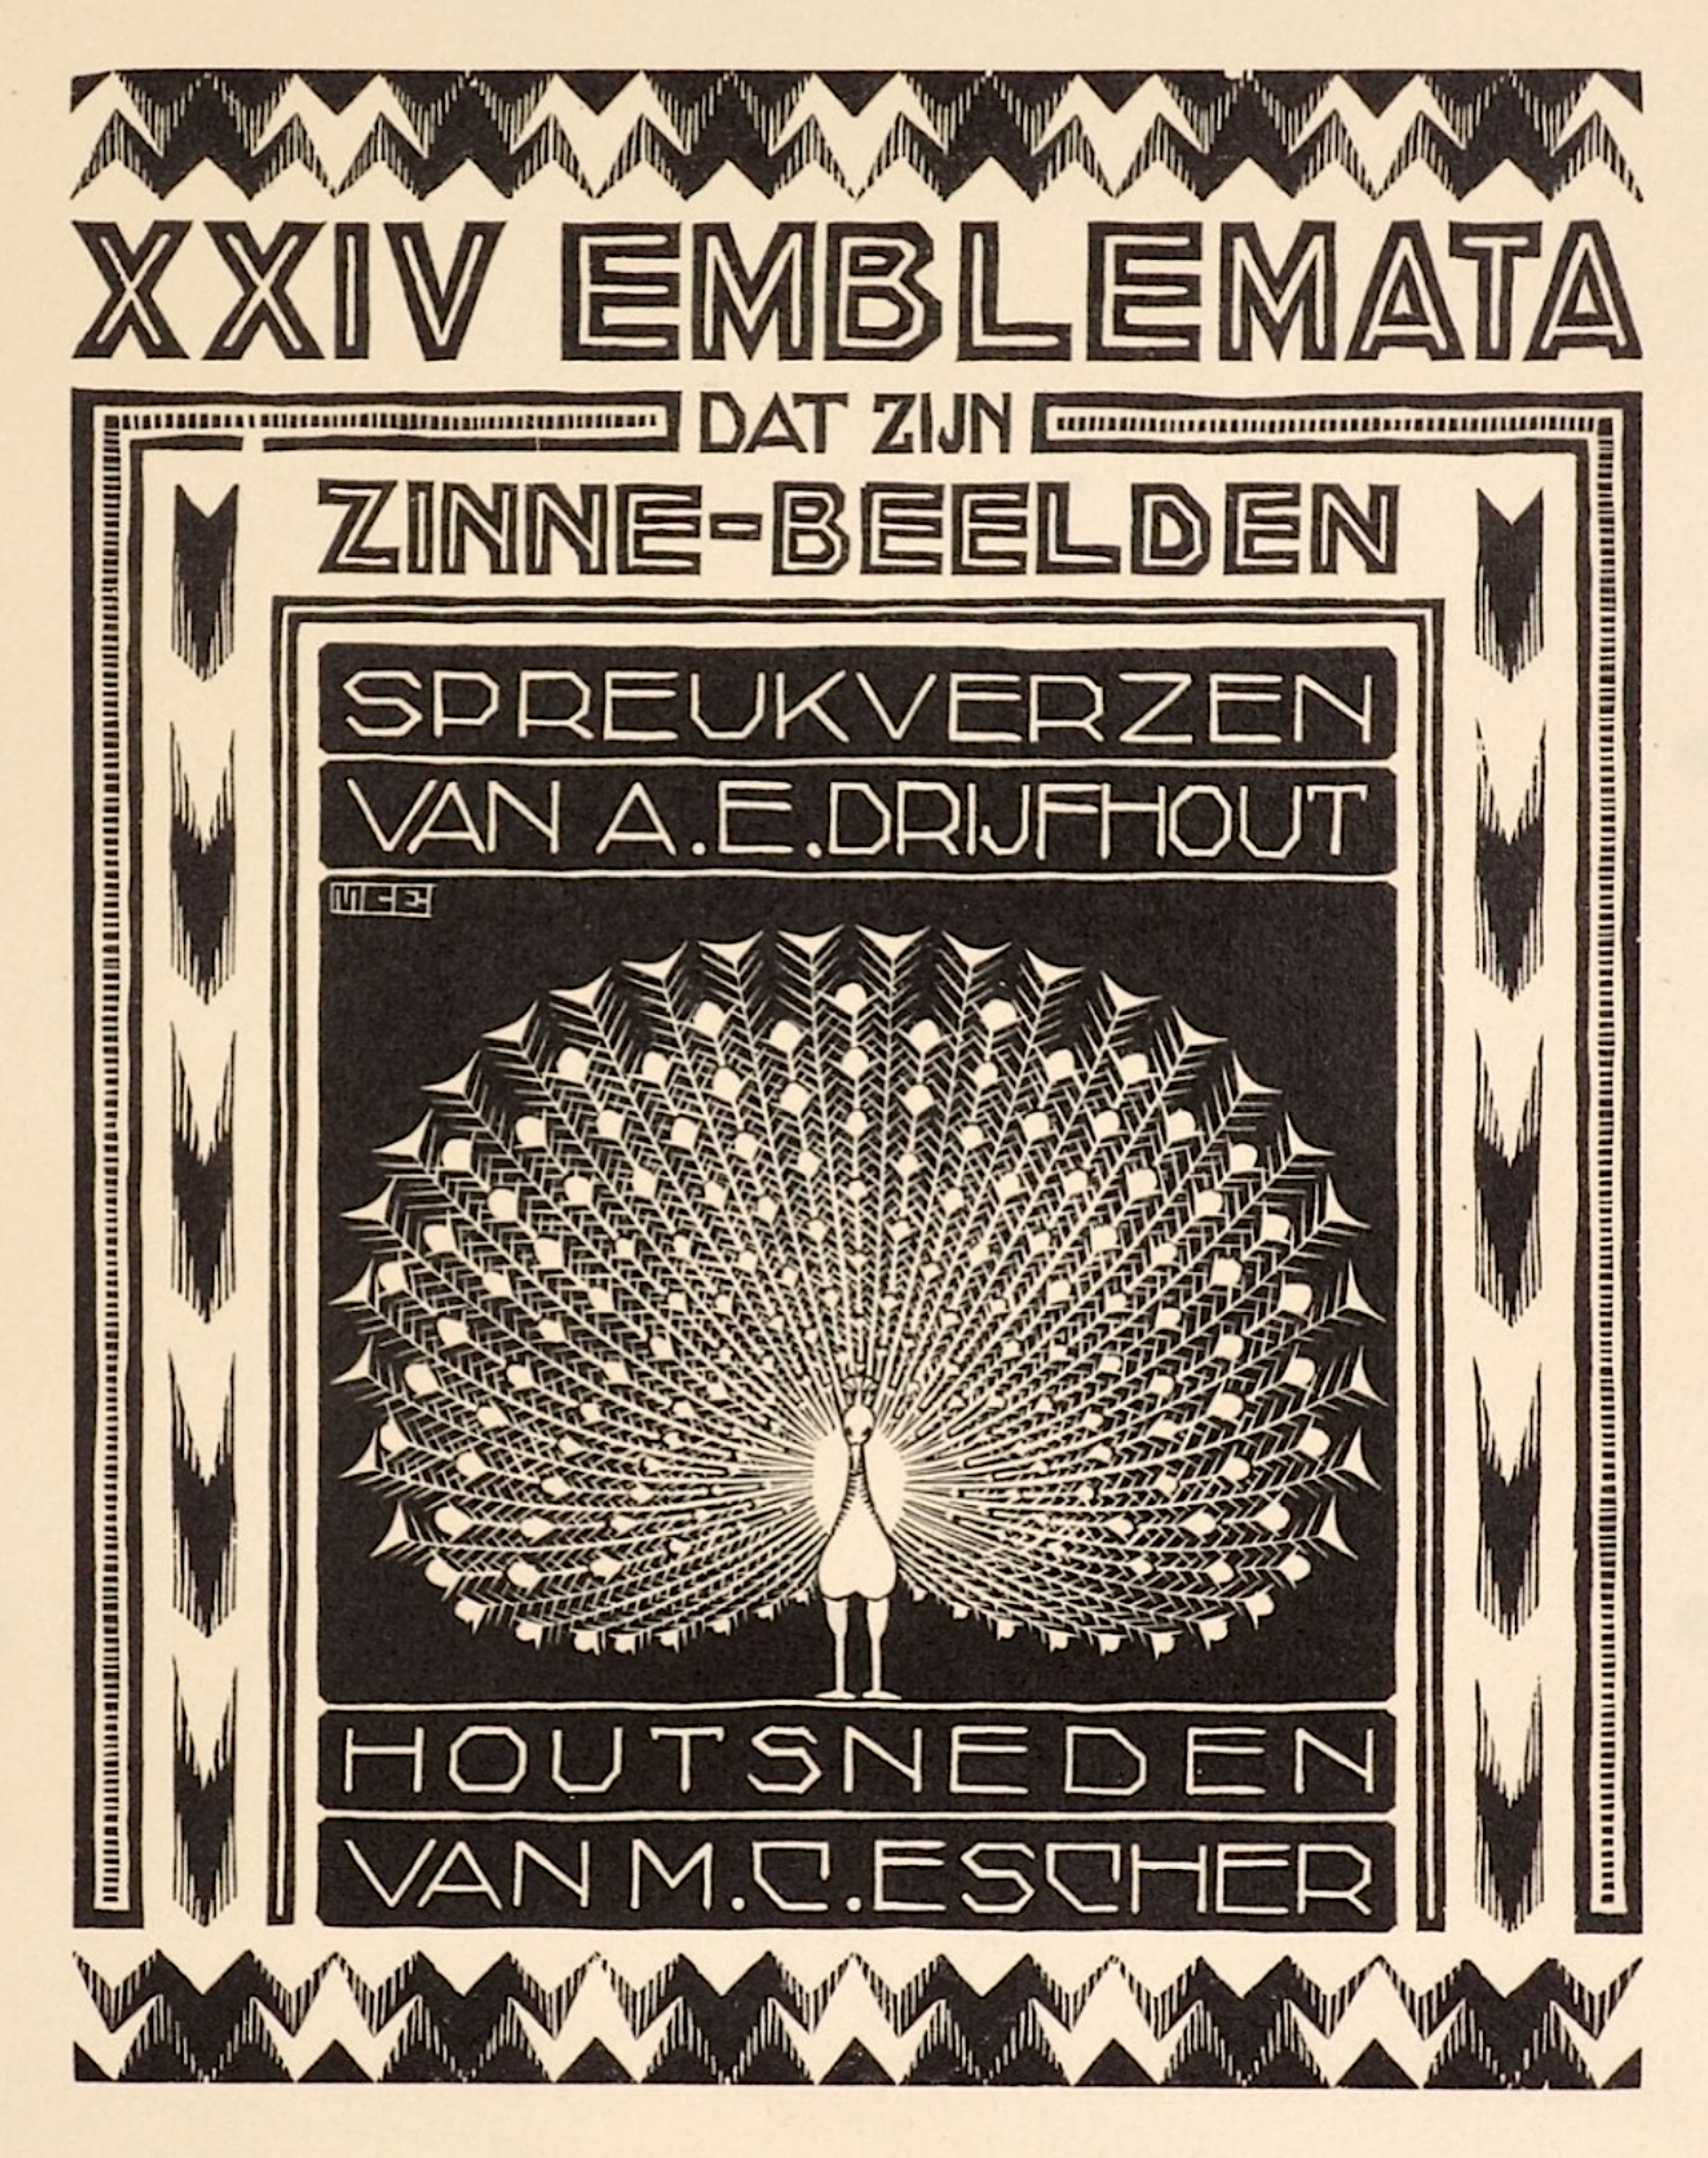 Emblemata - Peacock, Second Title Page by M.C. Escher